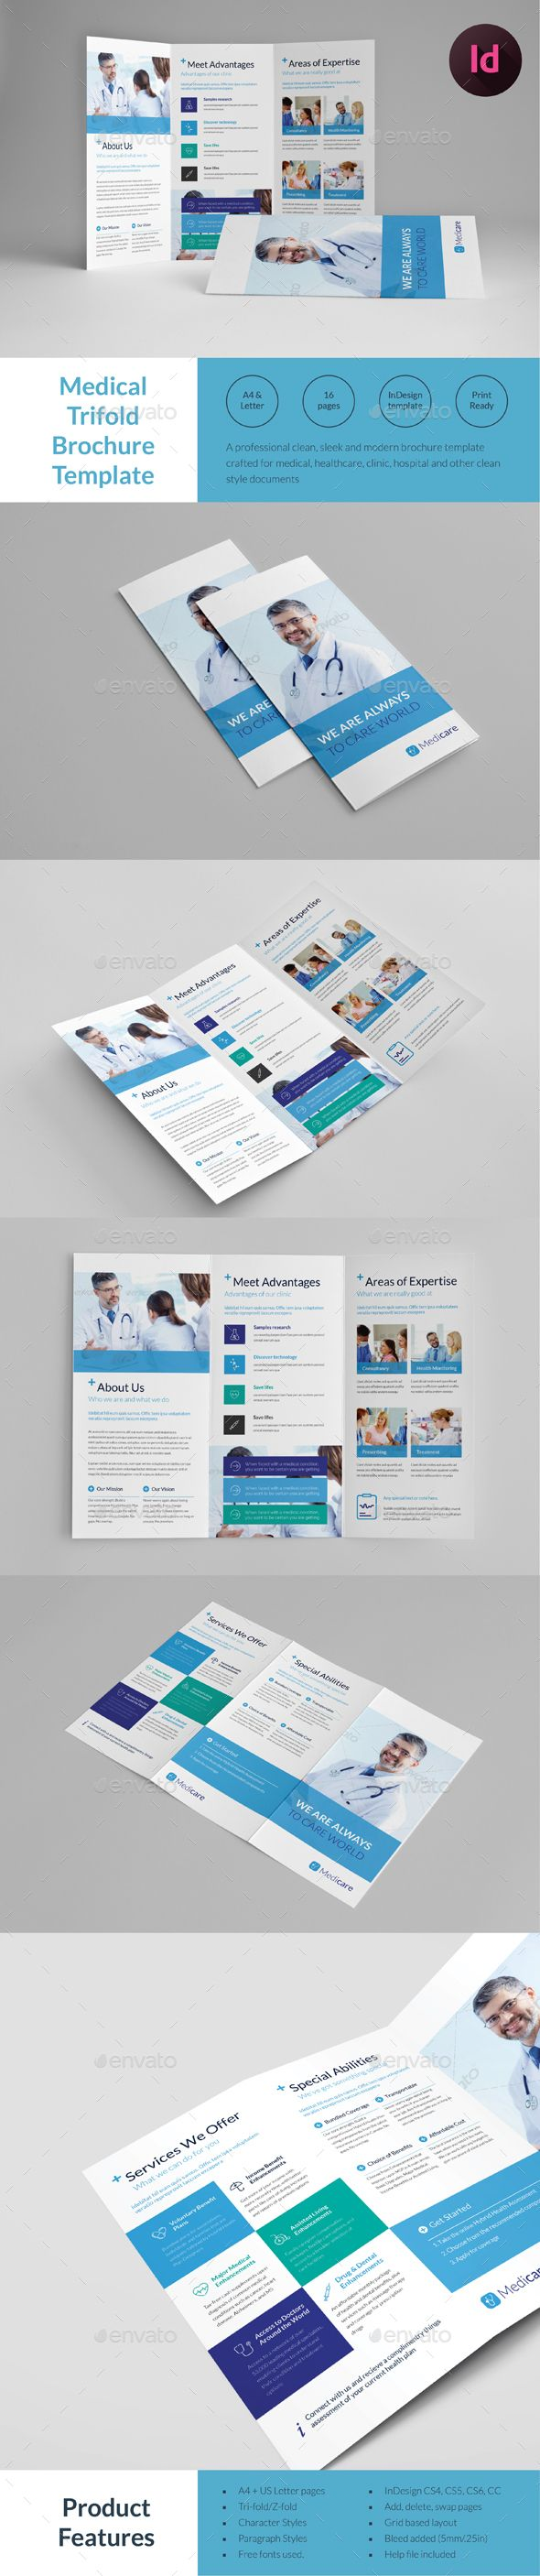 1000 ideas about medical brochure on pinterest for Medical brochure templates